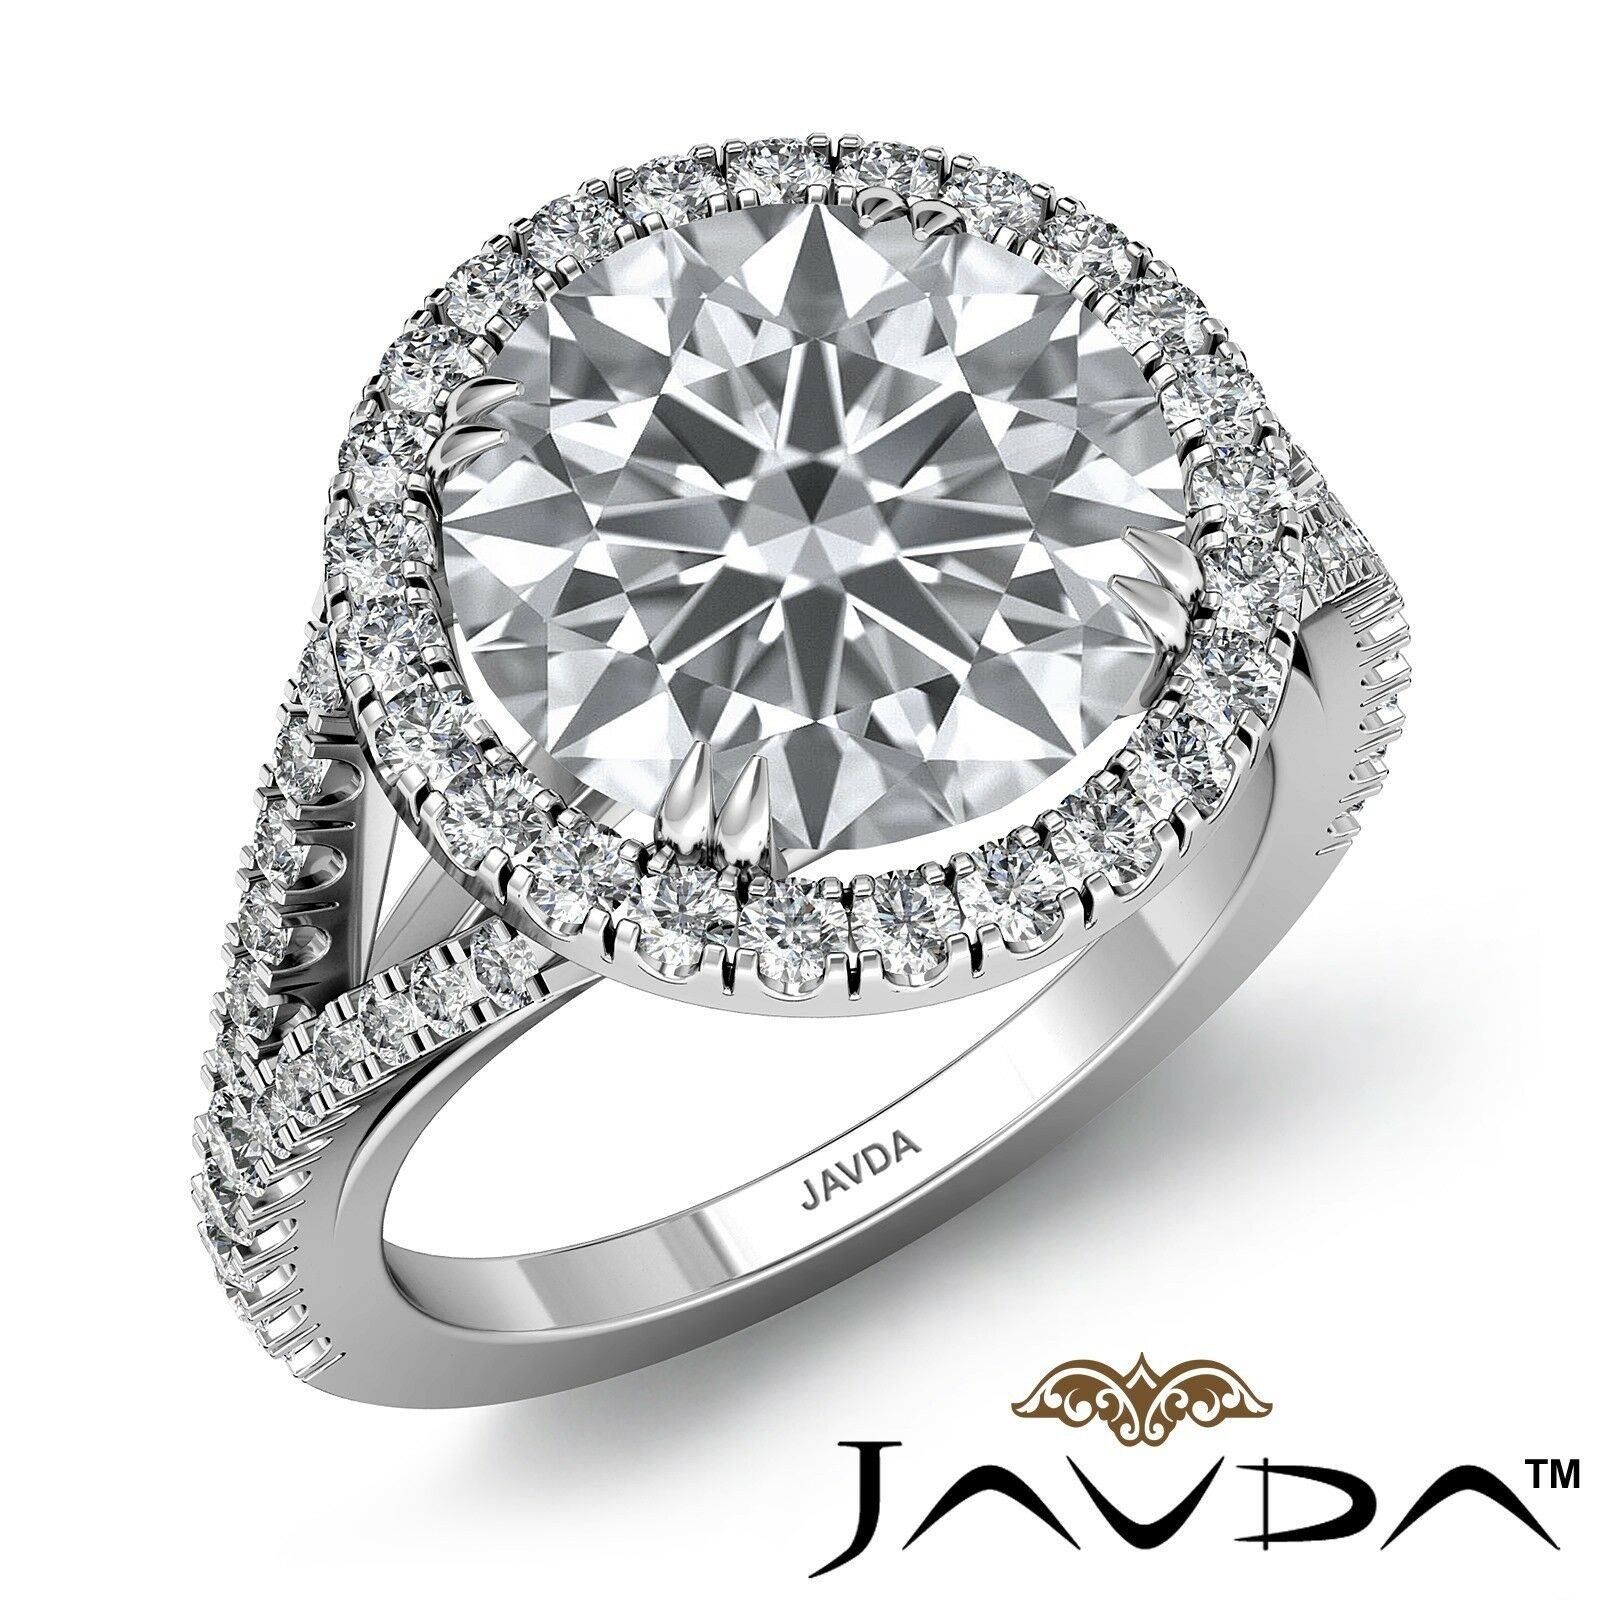 3.74ctw Gala Halo Pave Round Diamond Engagement Ring GIA H-IF Platinum Women New